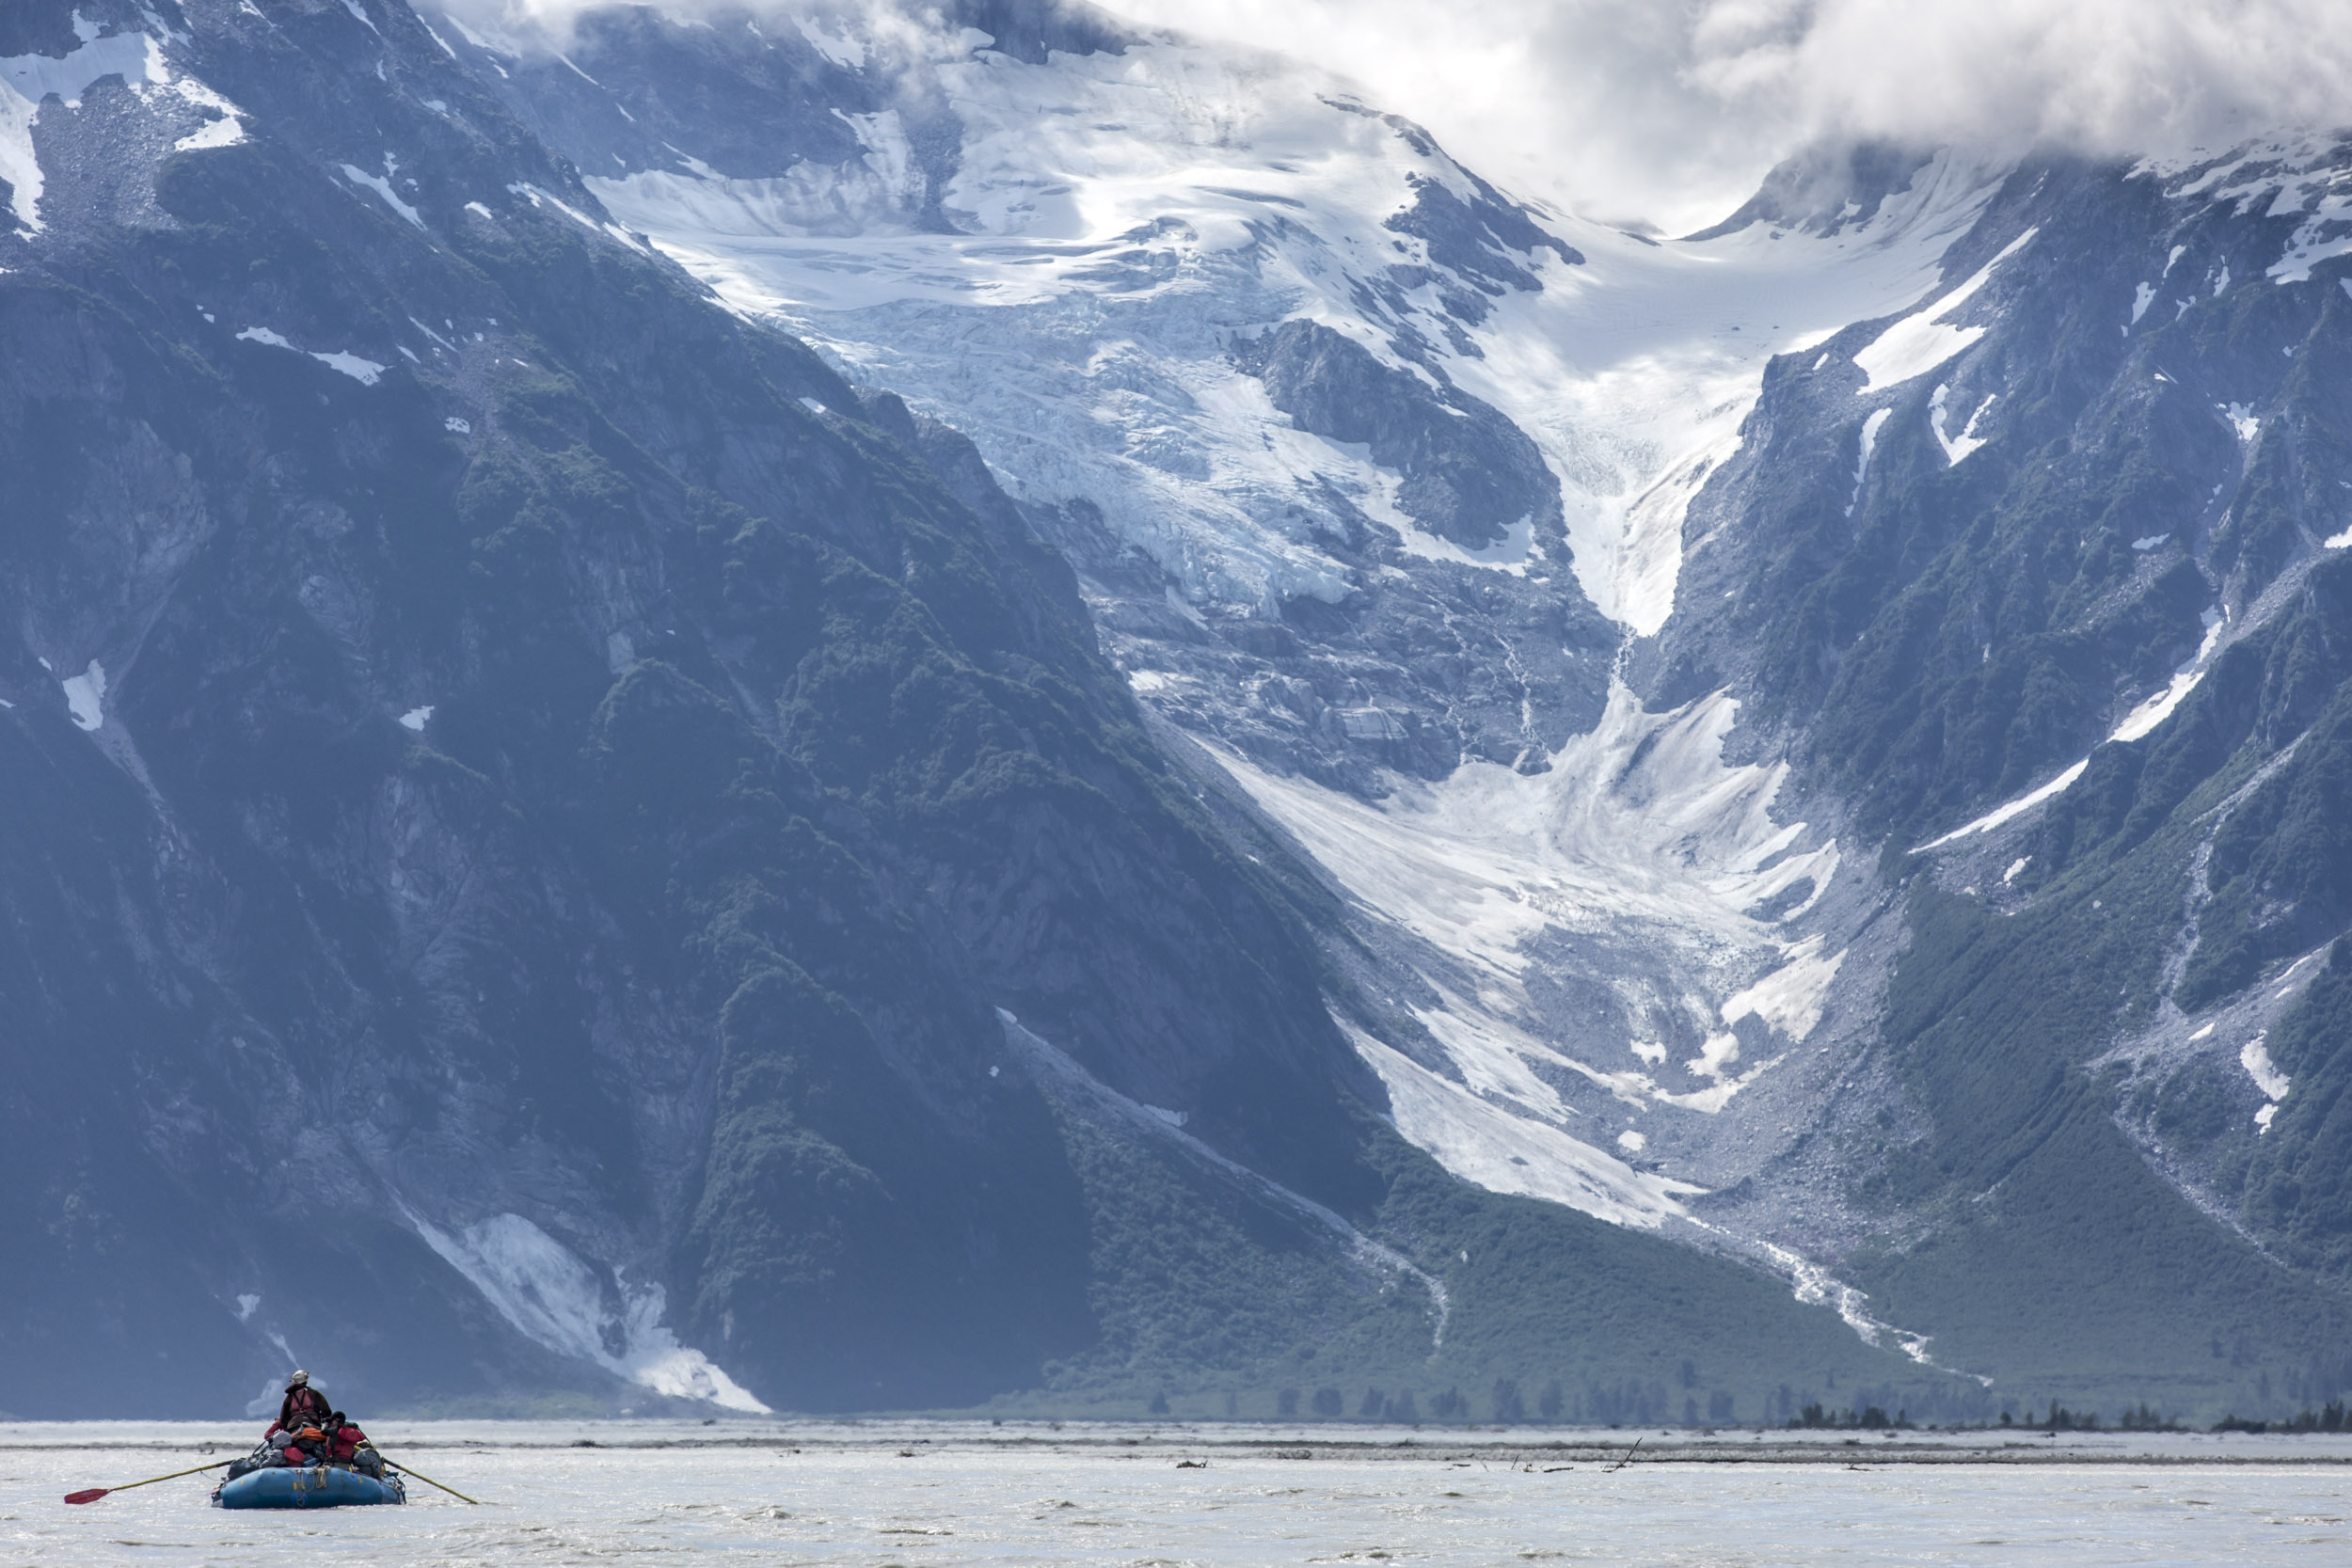 Alsek River - 12 Day Raft Expedition by Canadian River Expeditions - Image 4